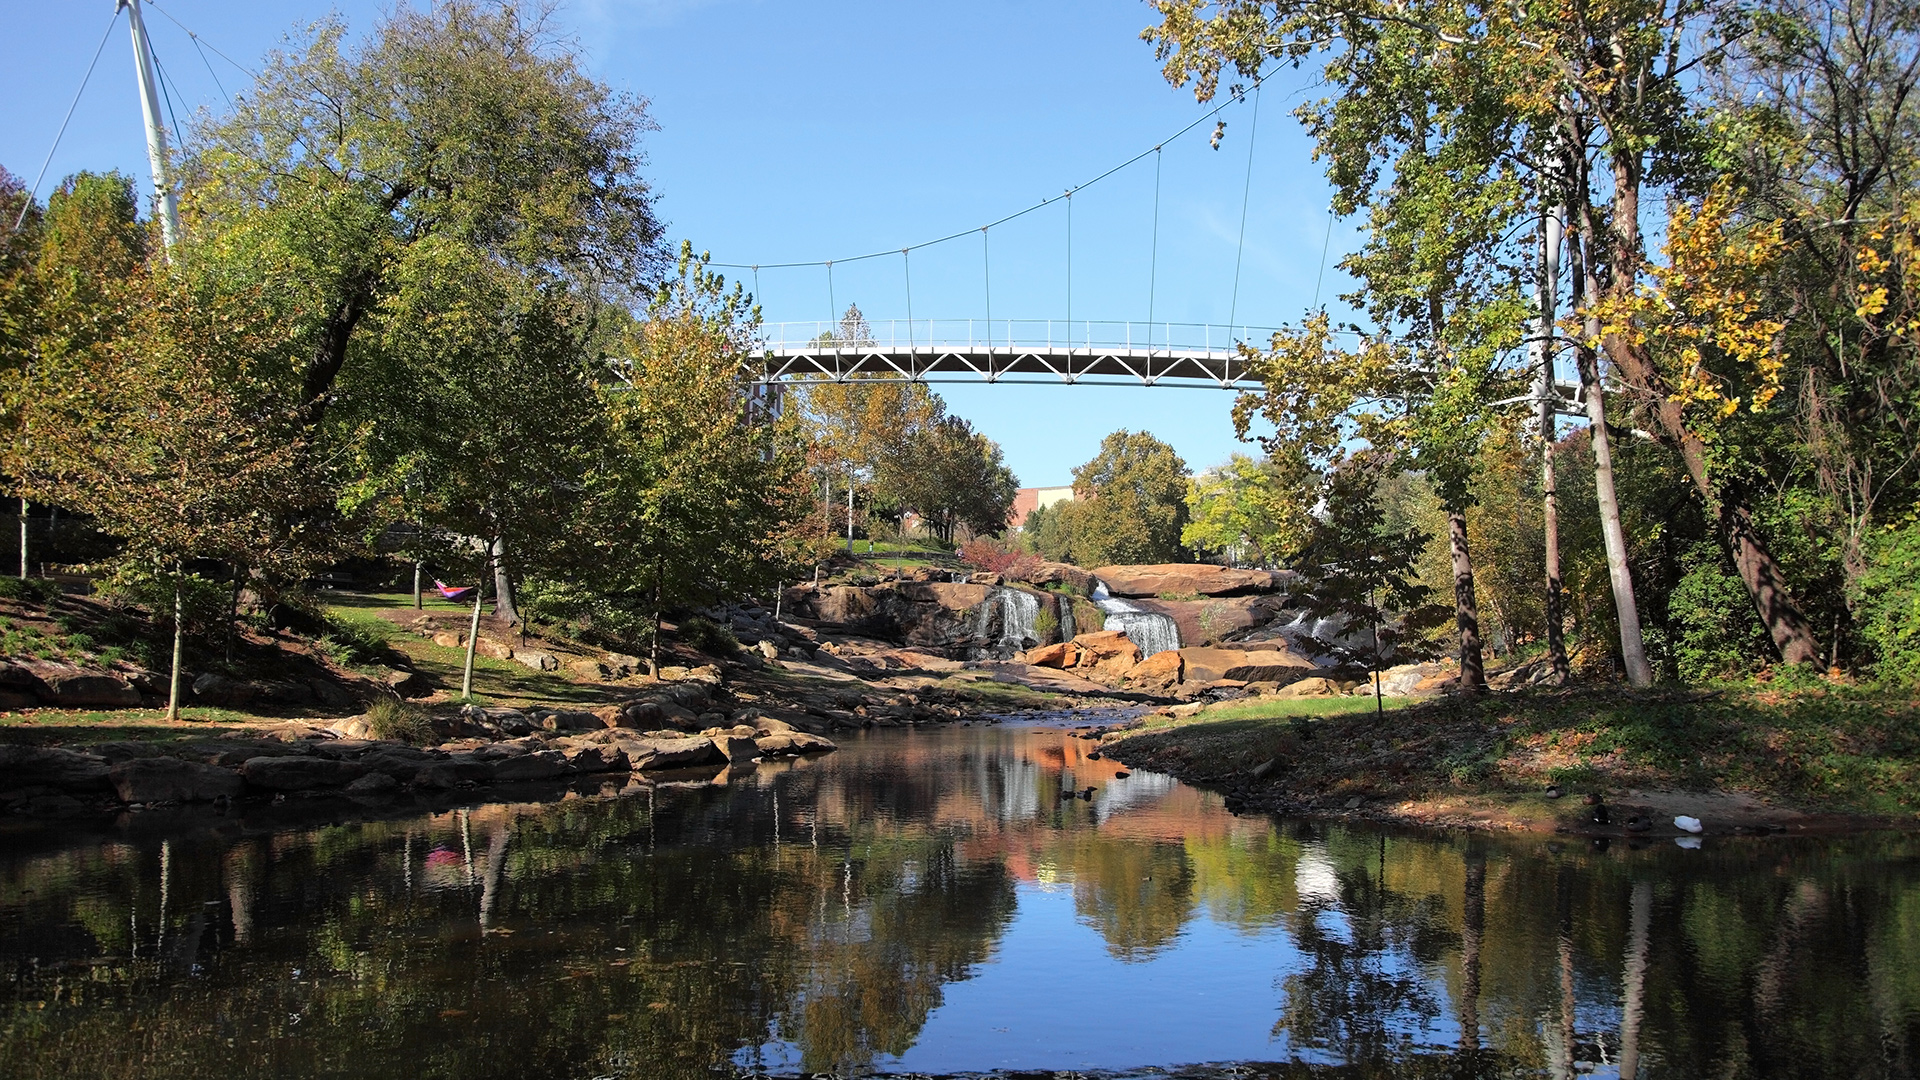 Explore Falls Park on the Reedy within walking distance from Canvas Townes